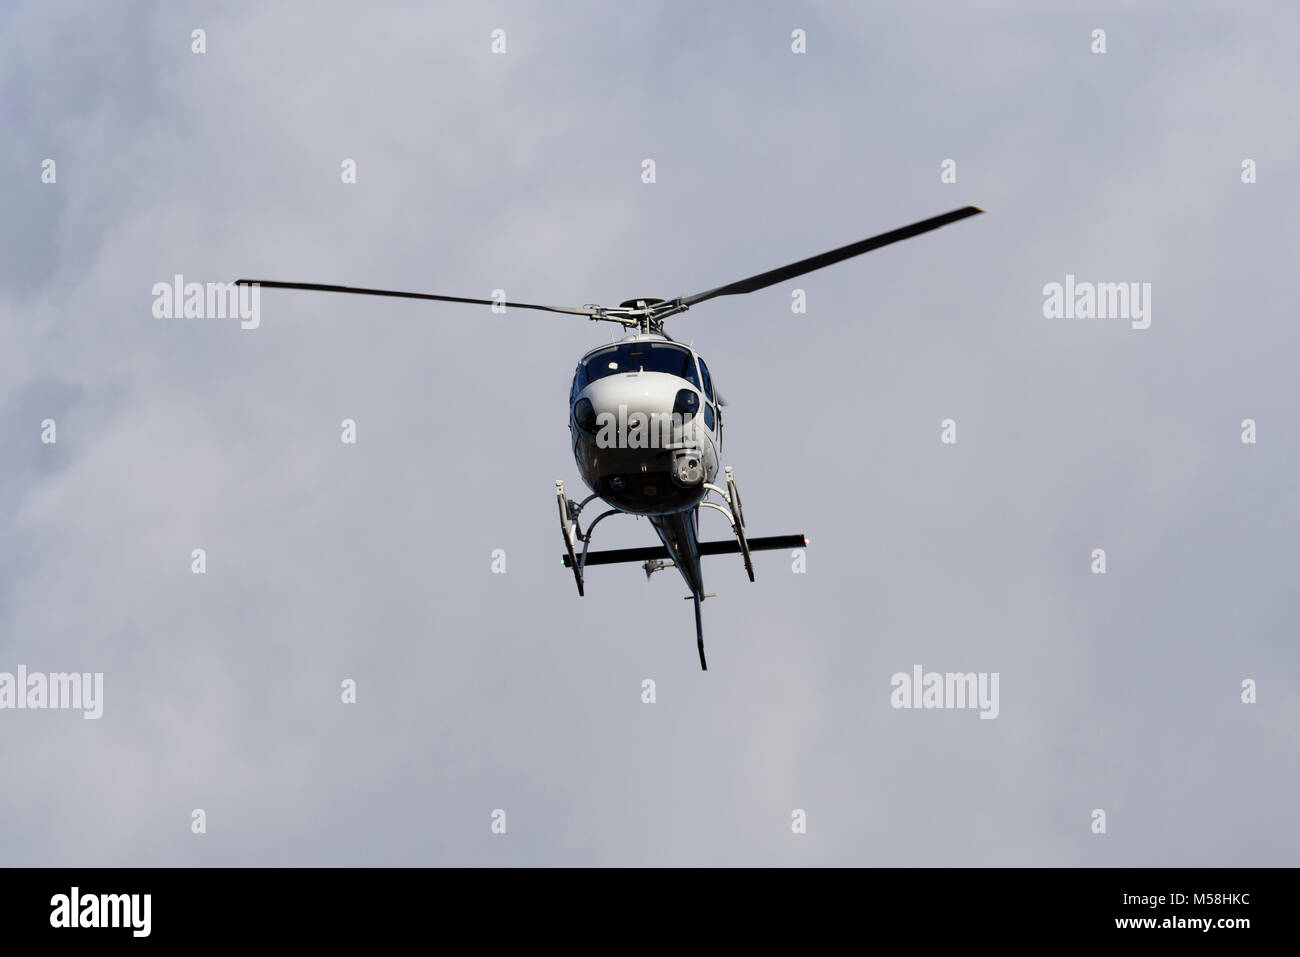 Squirrel helicopter with video camera - Stock Image